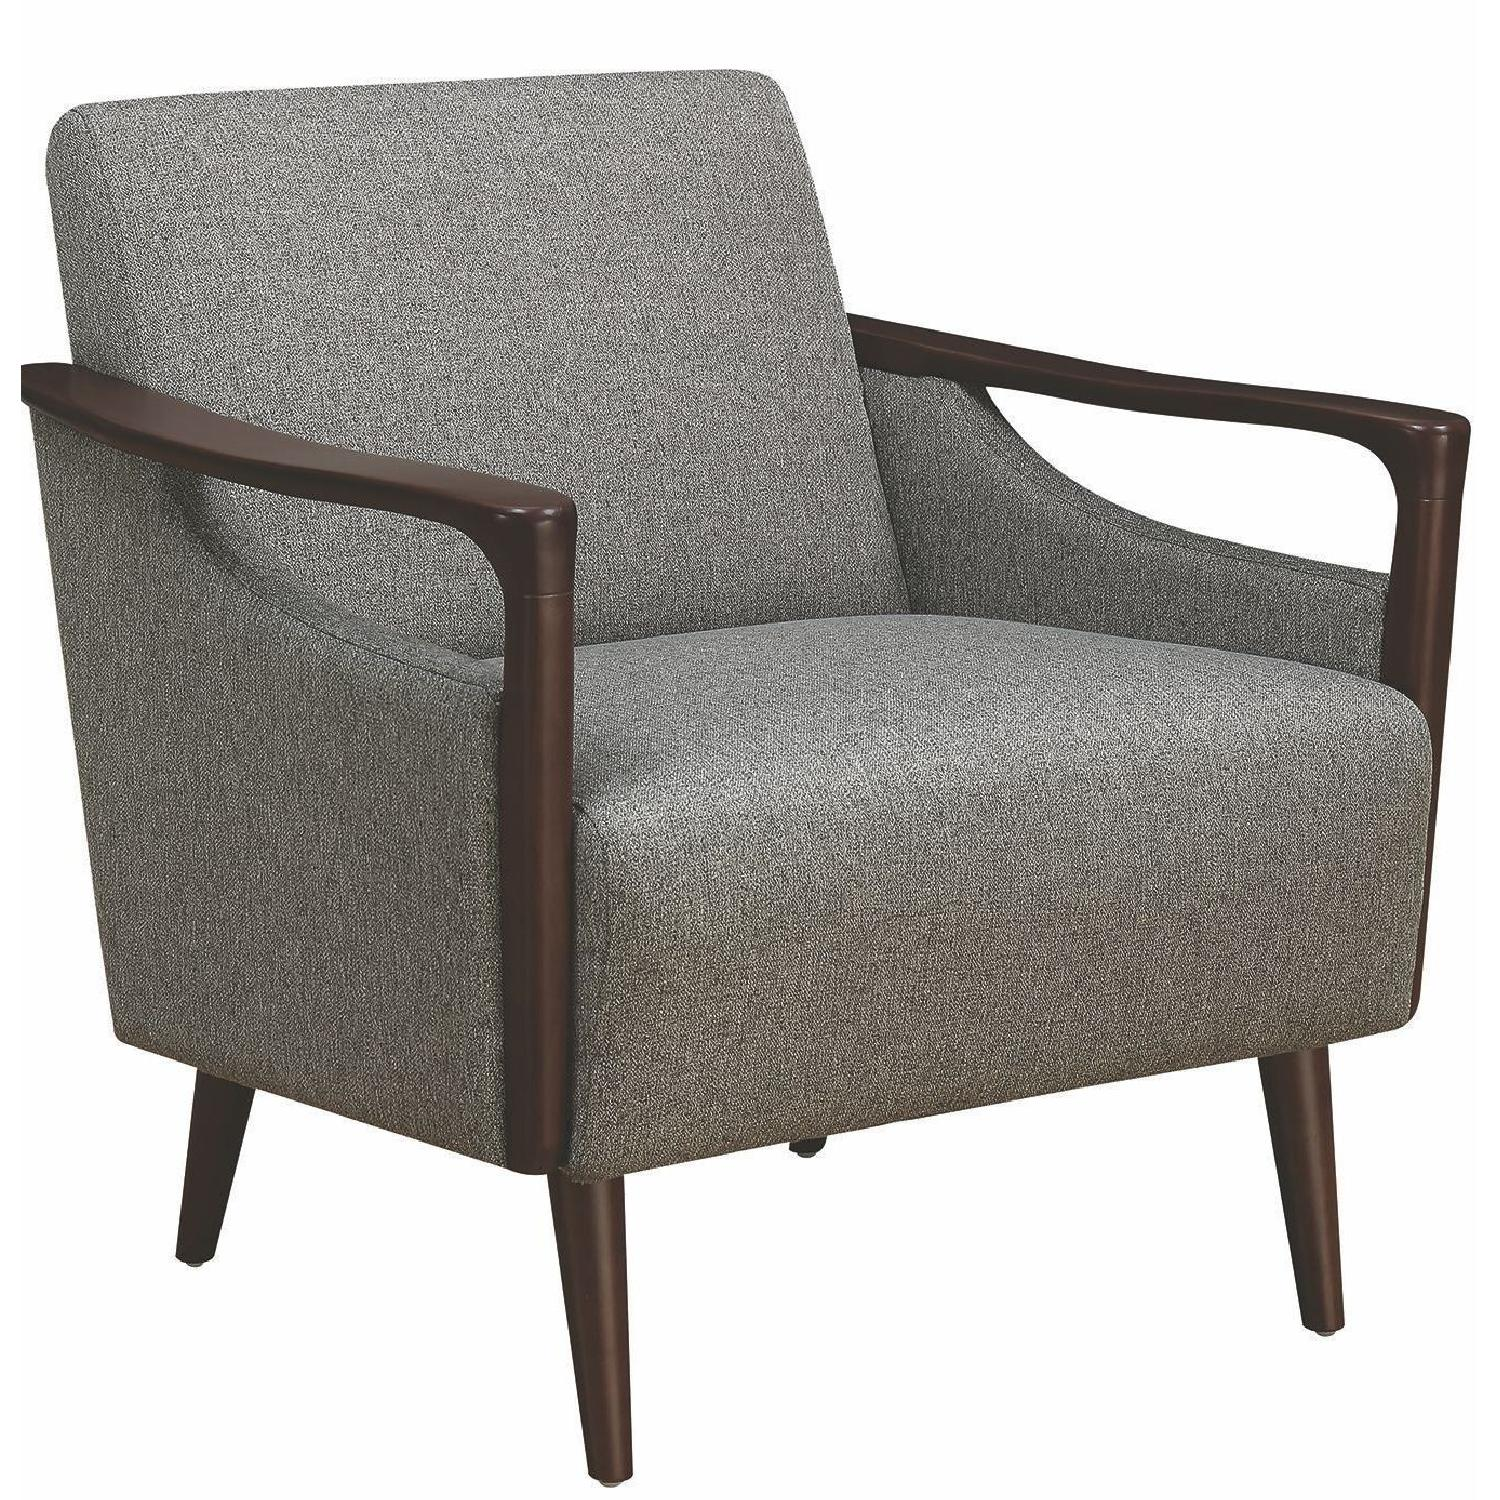 Mid Centyry Modern Accent Chair: Mid-Century Modern Accent Chair In Grey Fabric W/ Wood